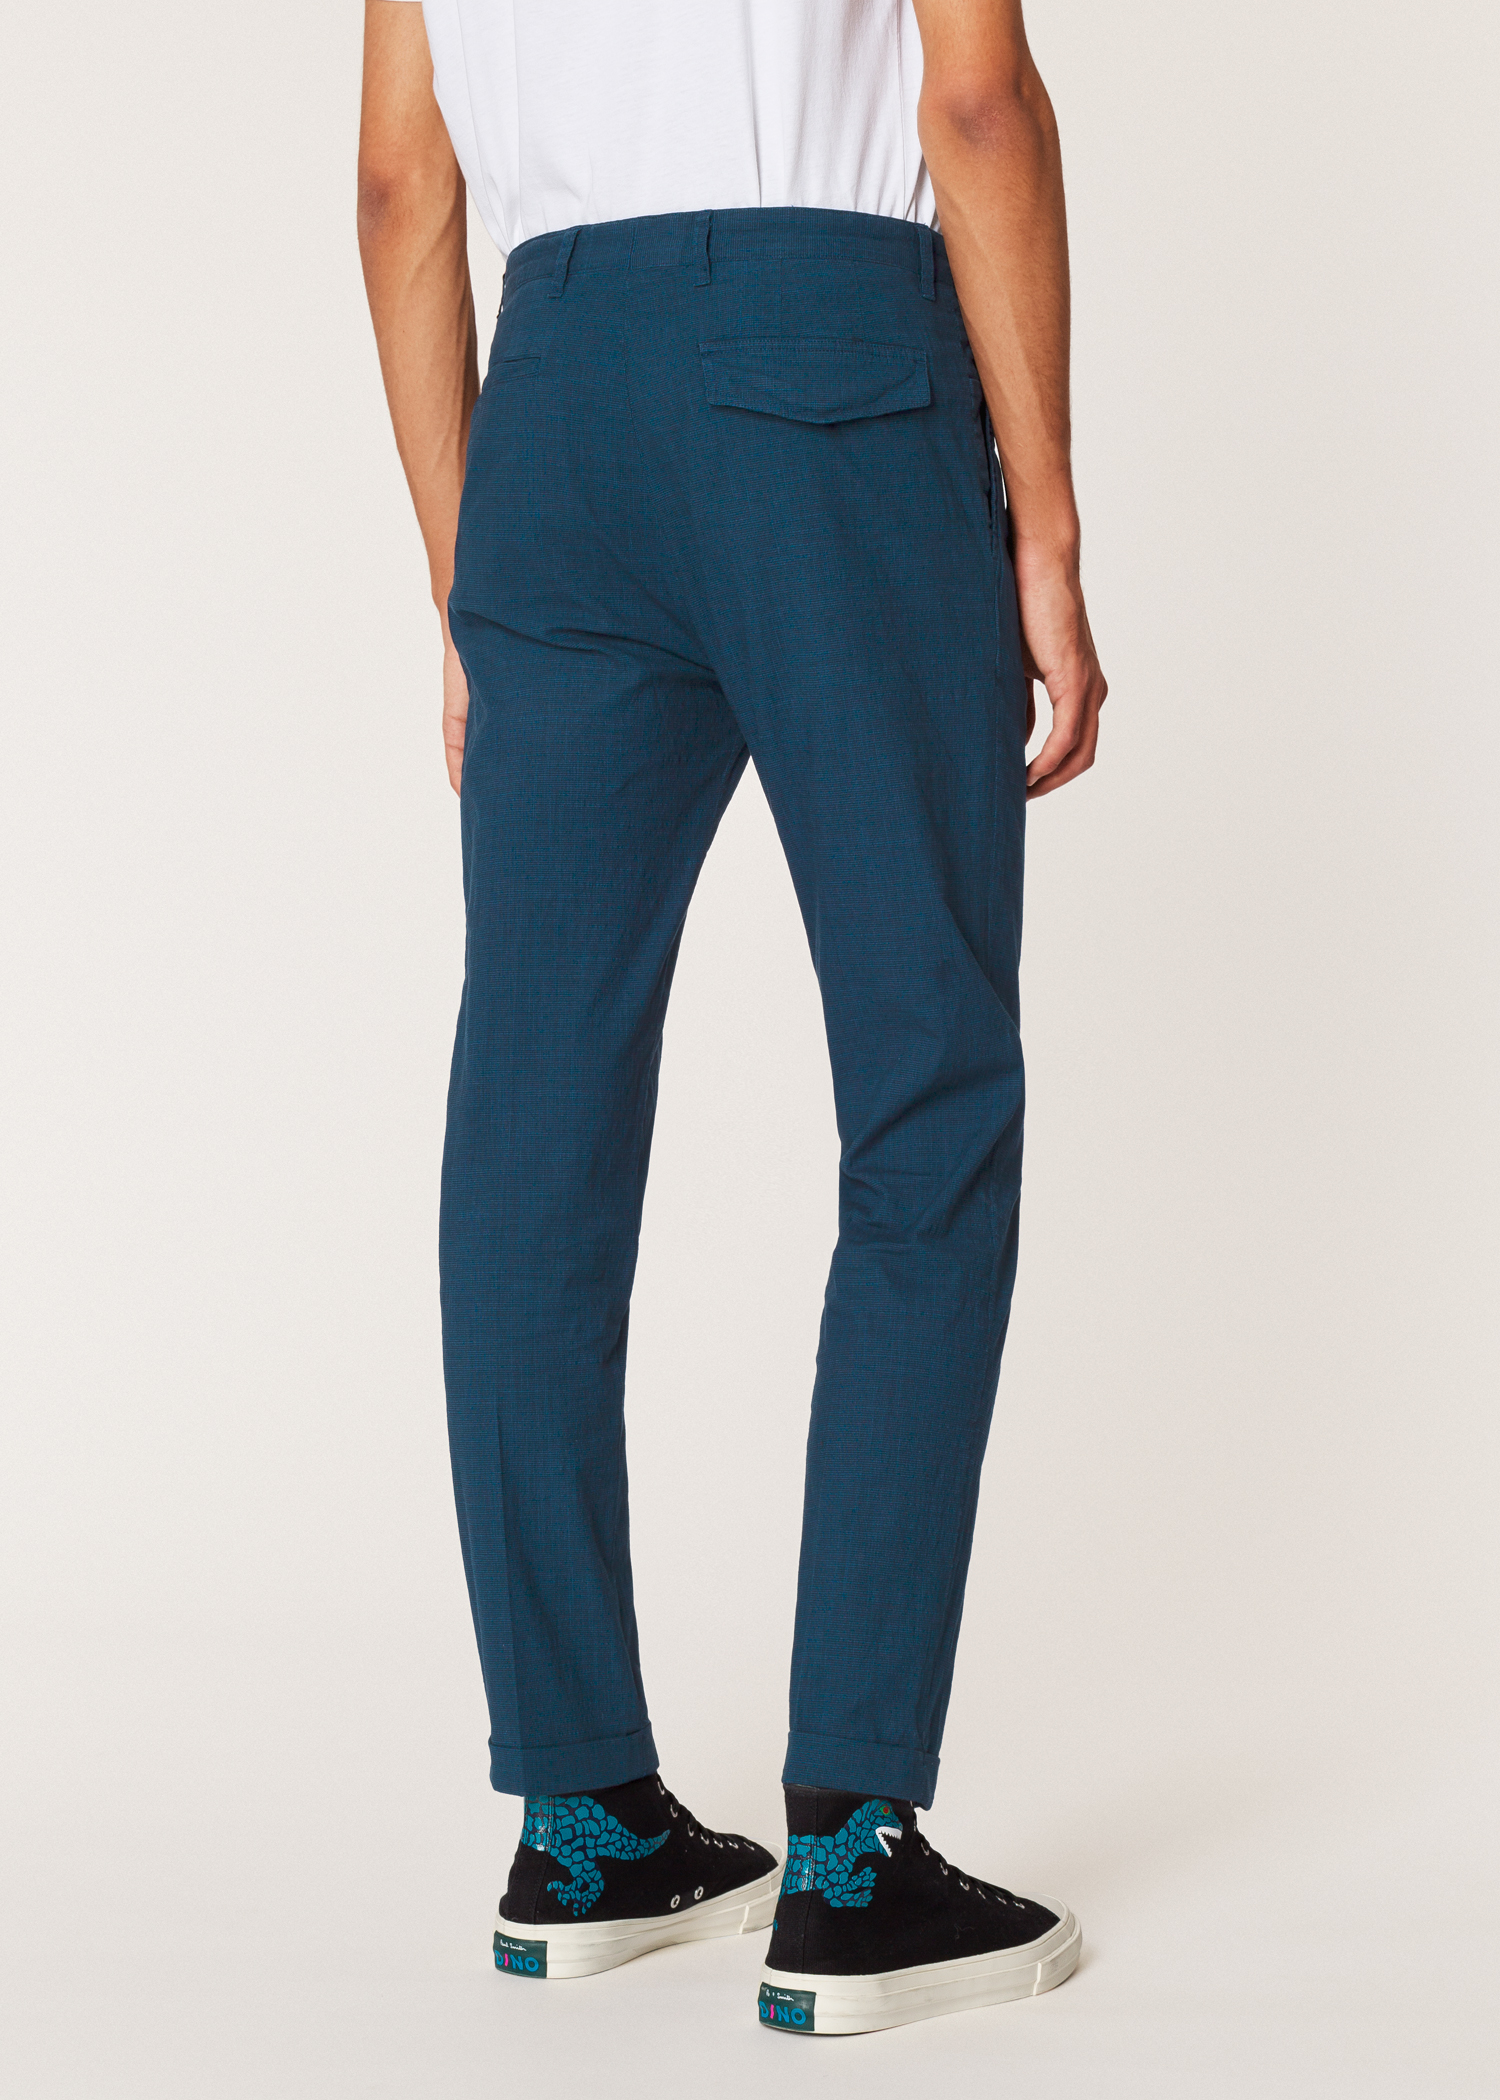 Men S Navy Houndstooth Pleated Cotton And Linen Blend Trousers